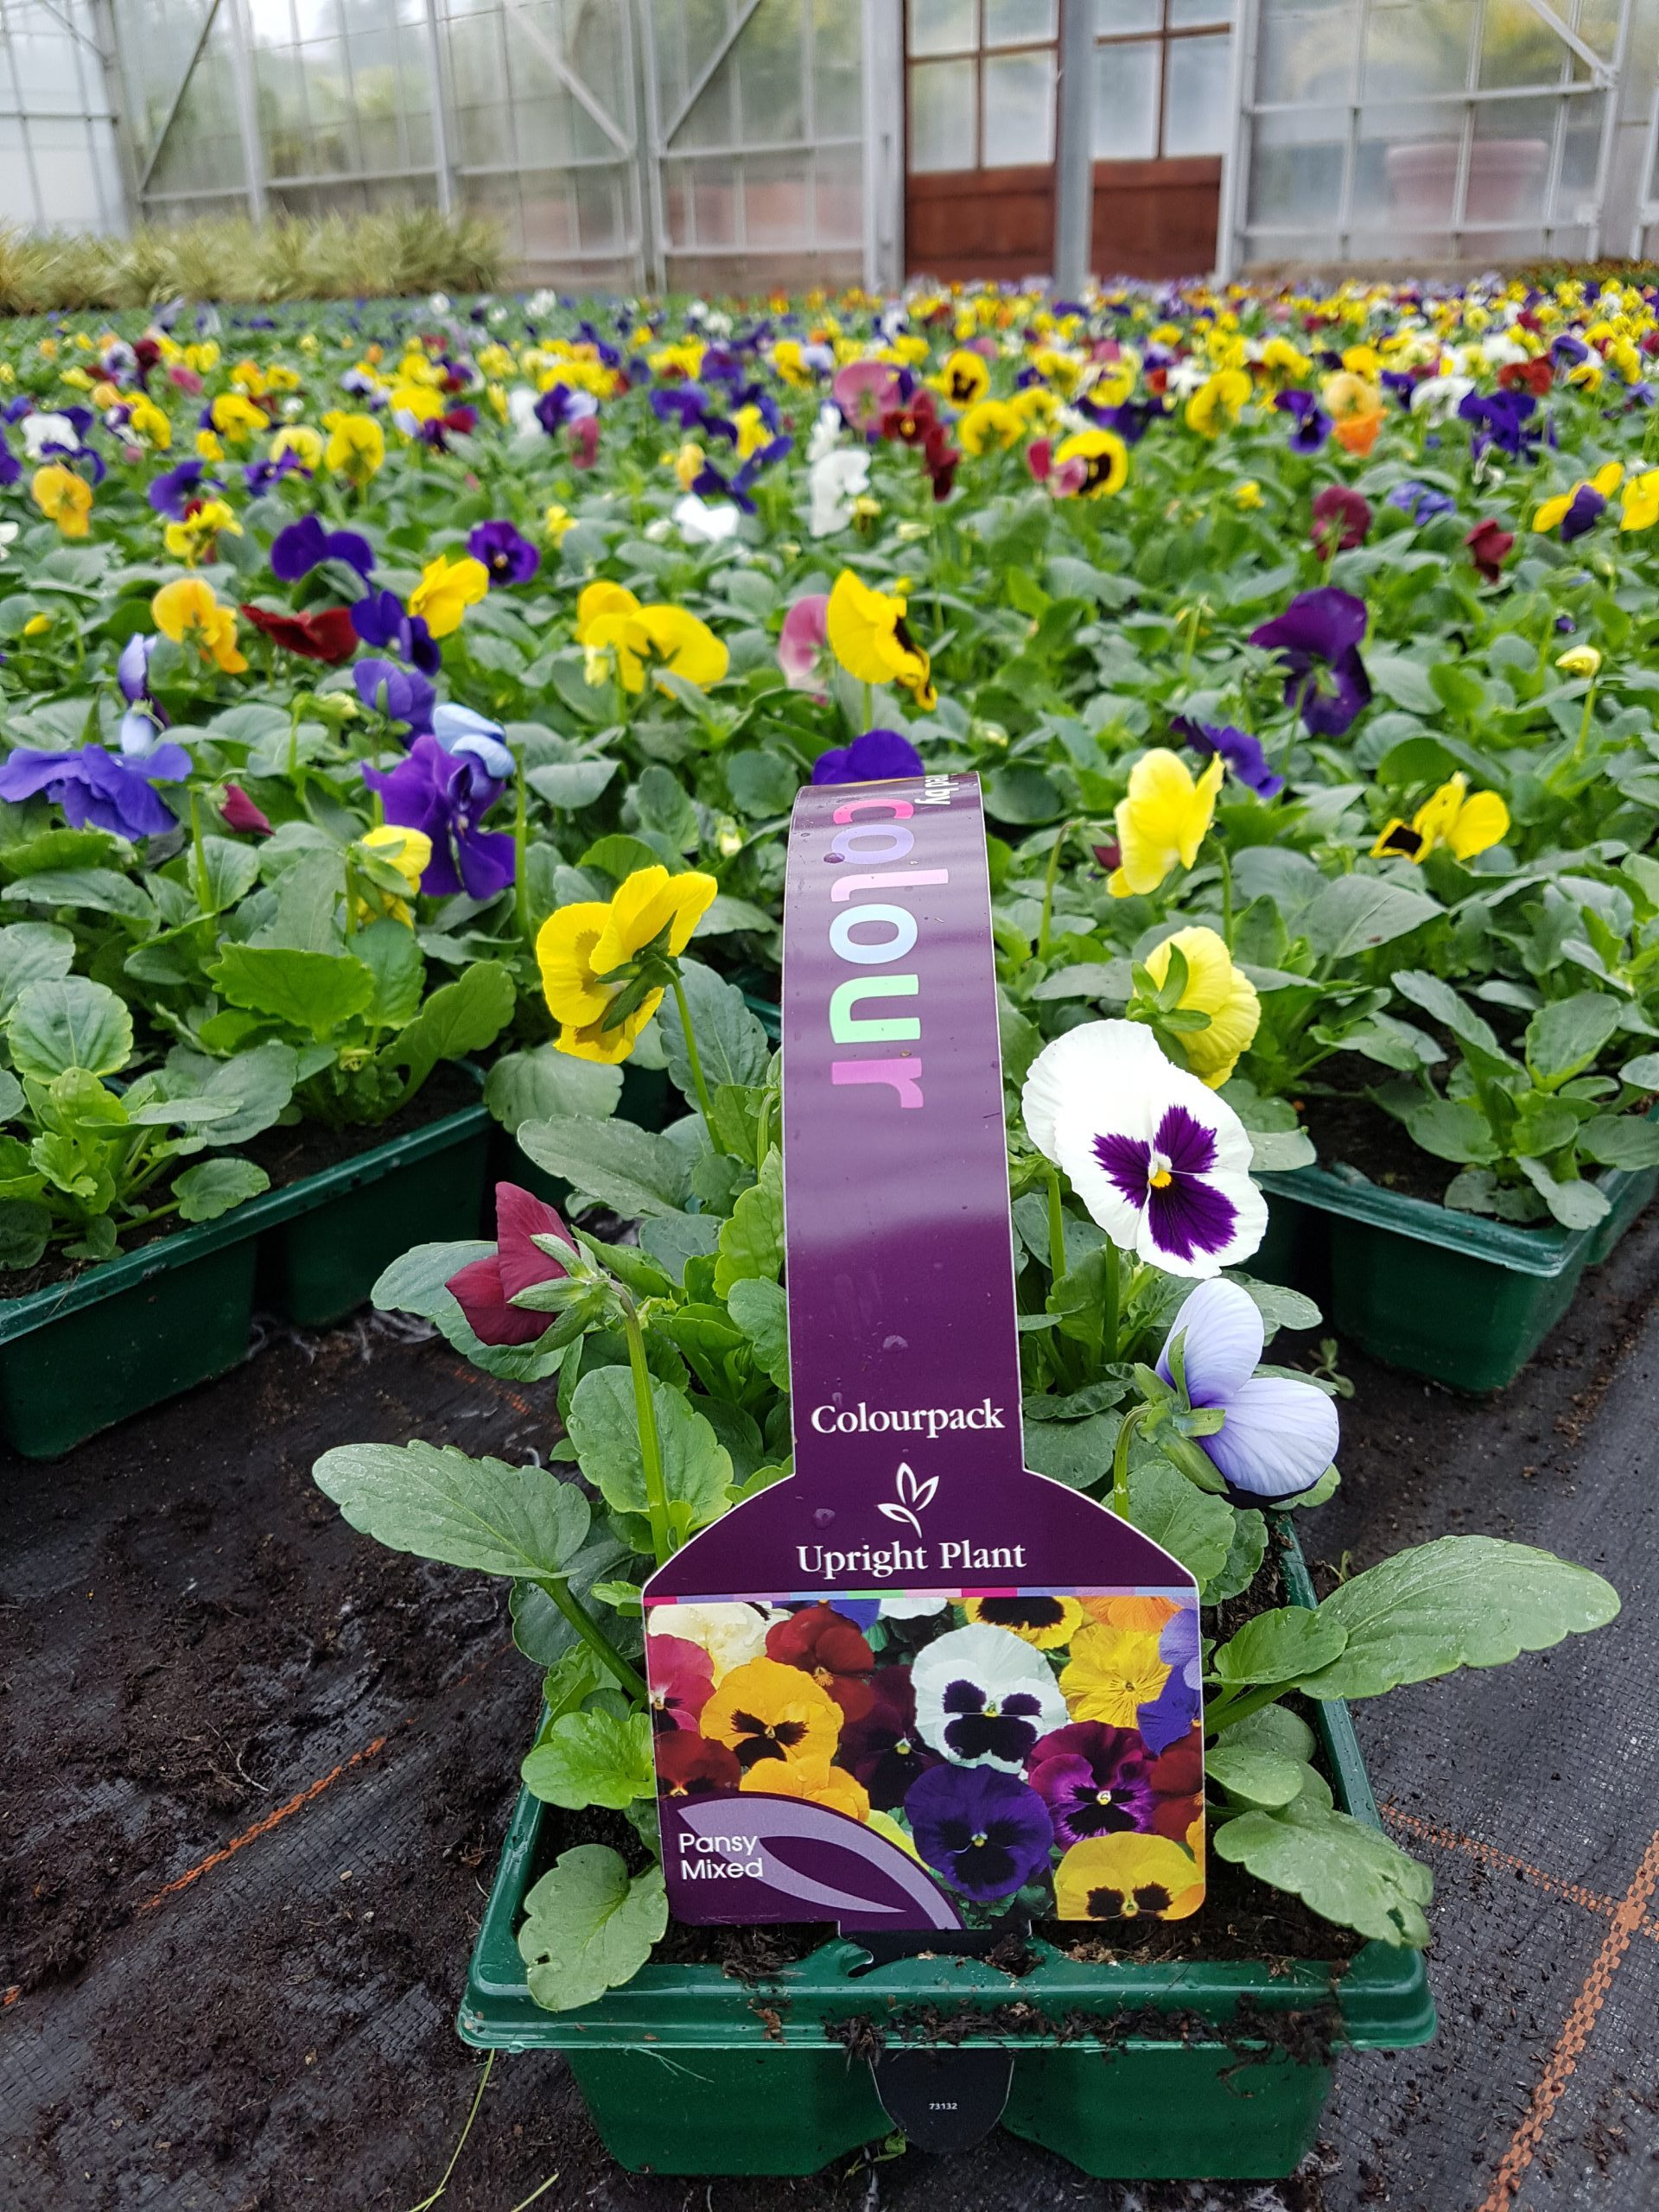 Mixed pansy bedding plants